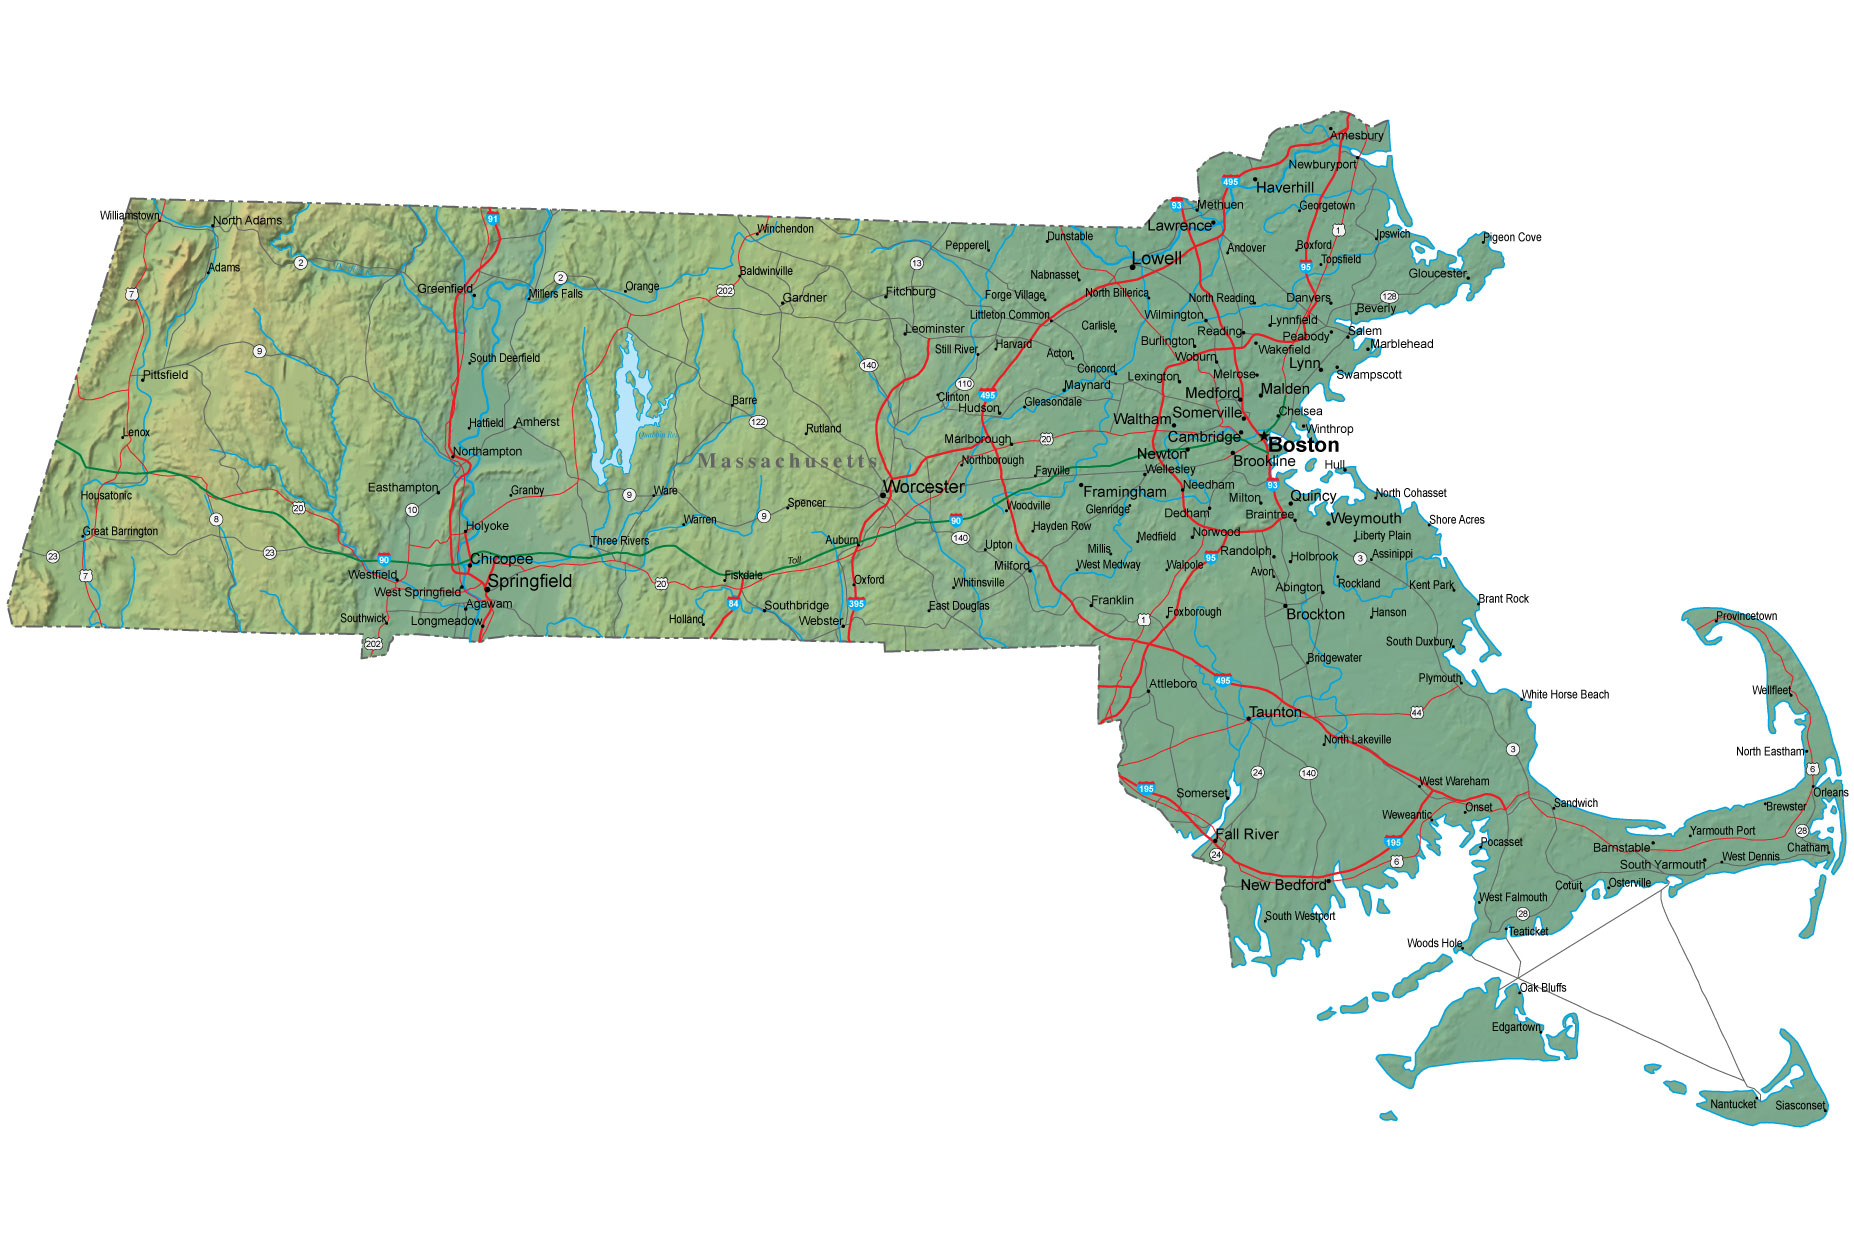 What Are Natural Resources In Massachusetts